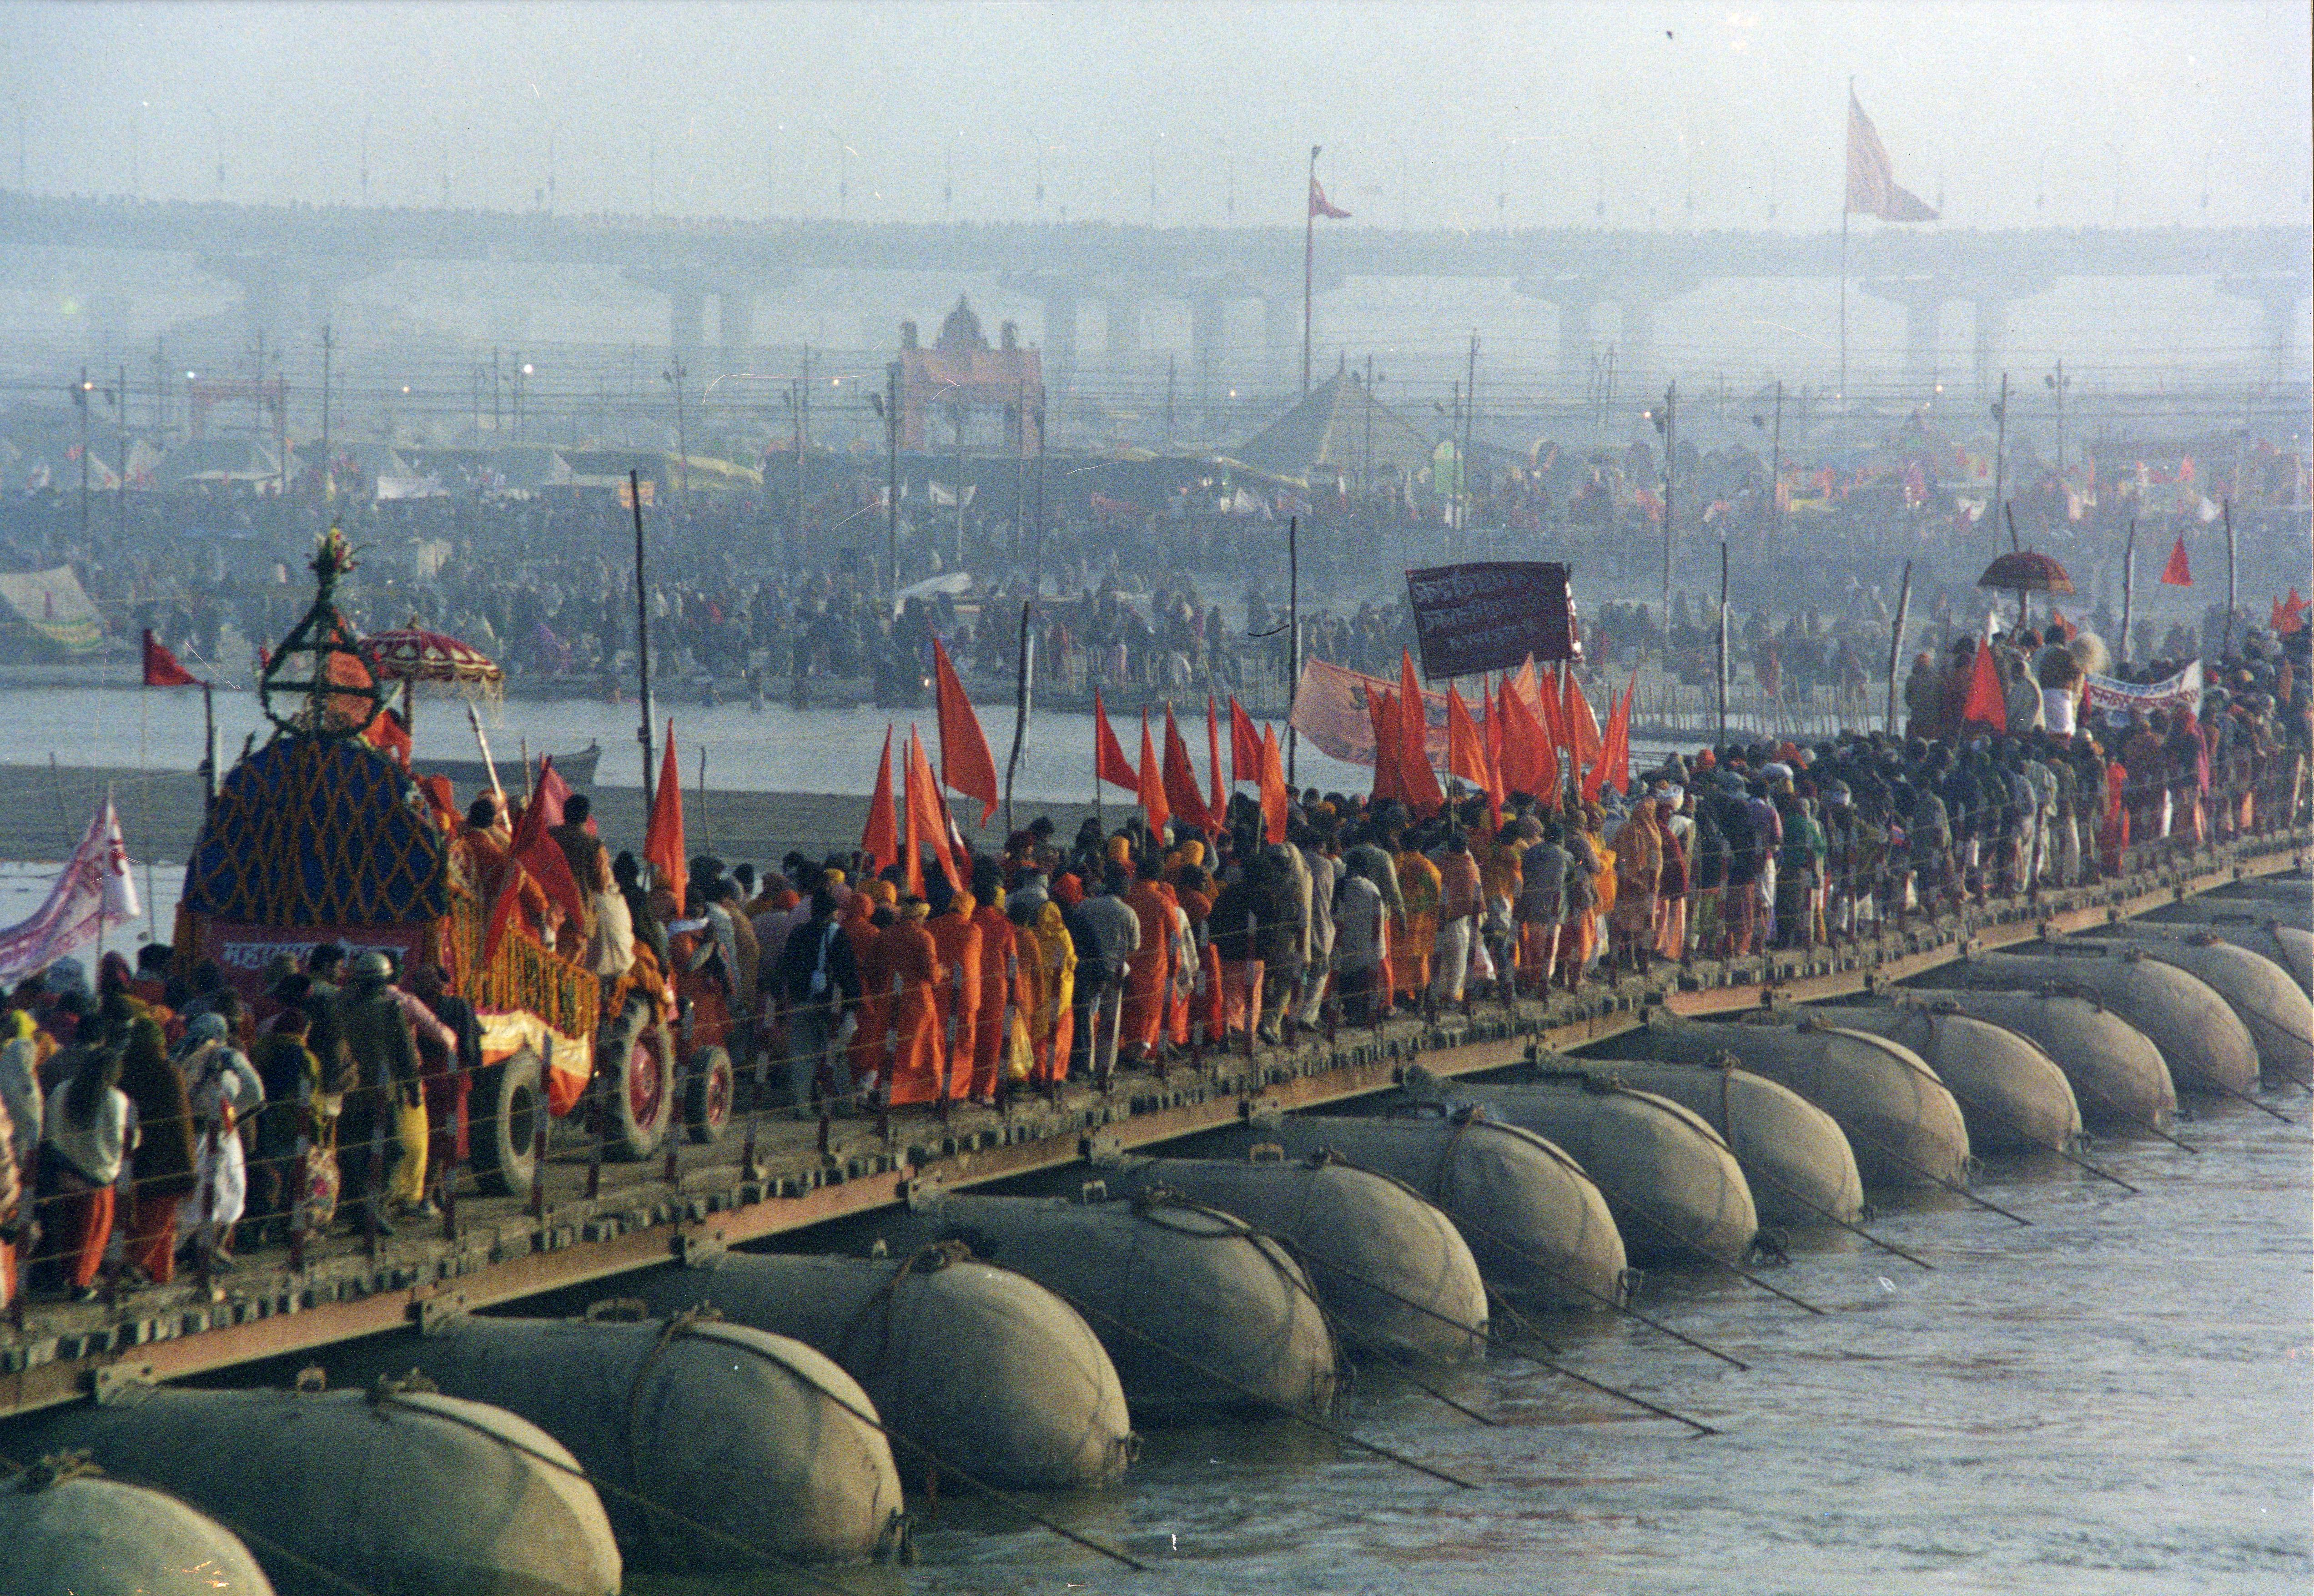 A procession of Akharas marching over a makeshift bridge over the Ganges river, Kumbh Mela at Allahabad, 2001